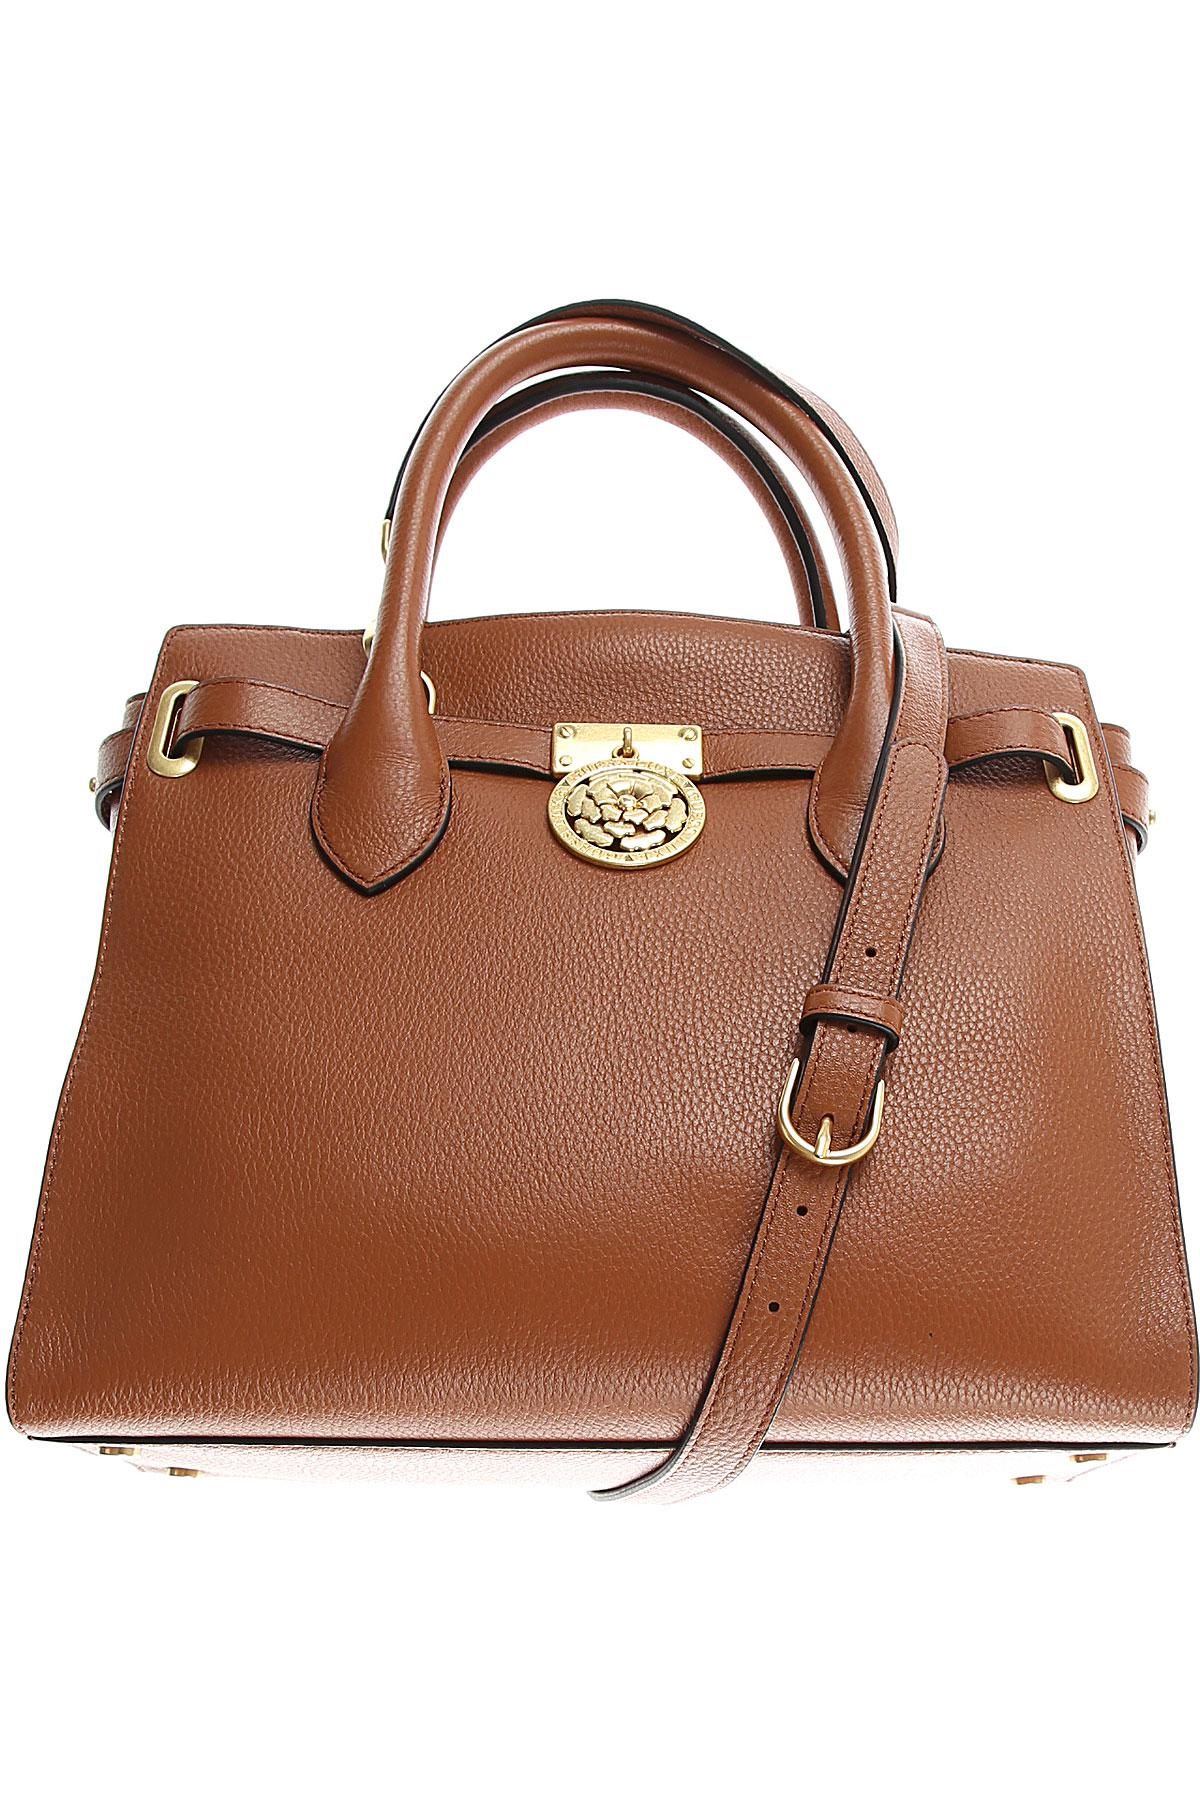 b9df5611a50d Lyst - Guess Tote Bag On Sale in Brown